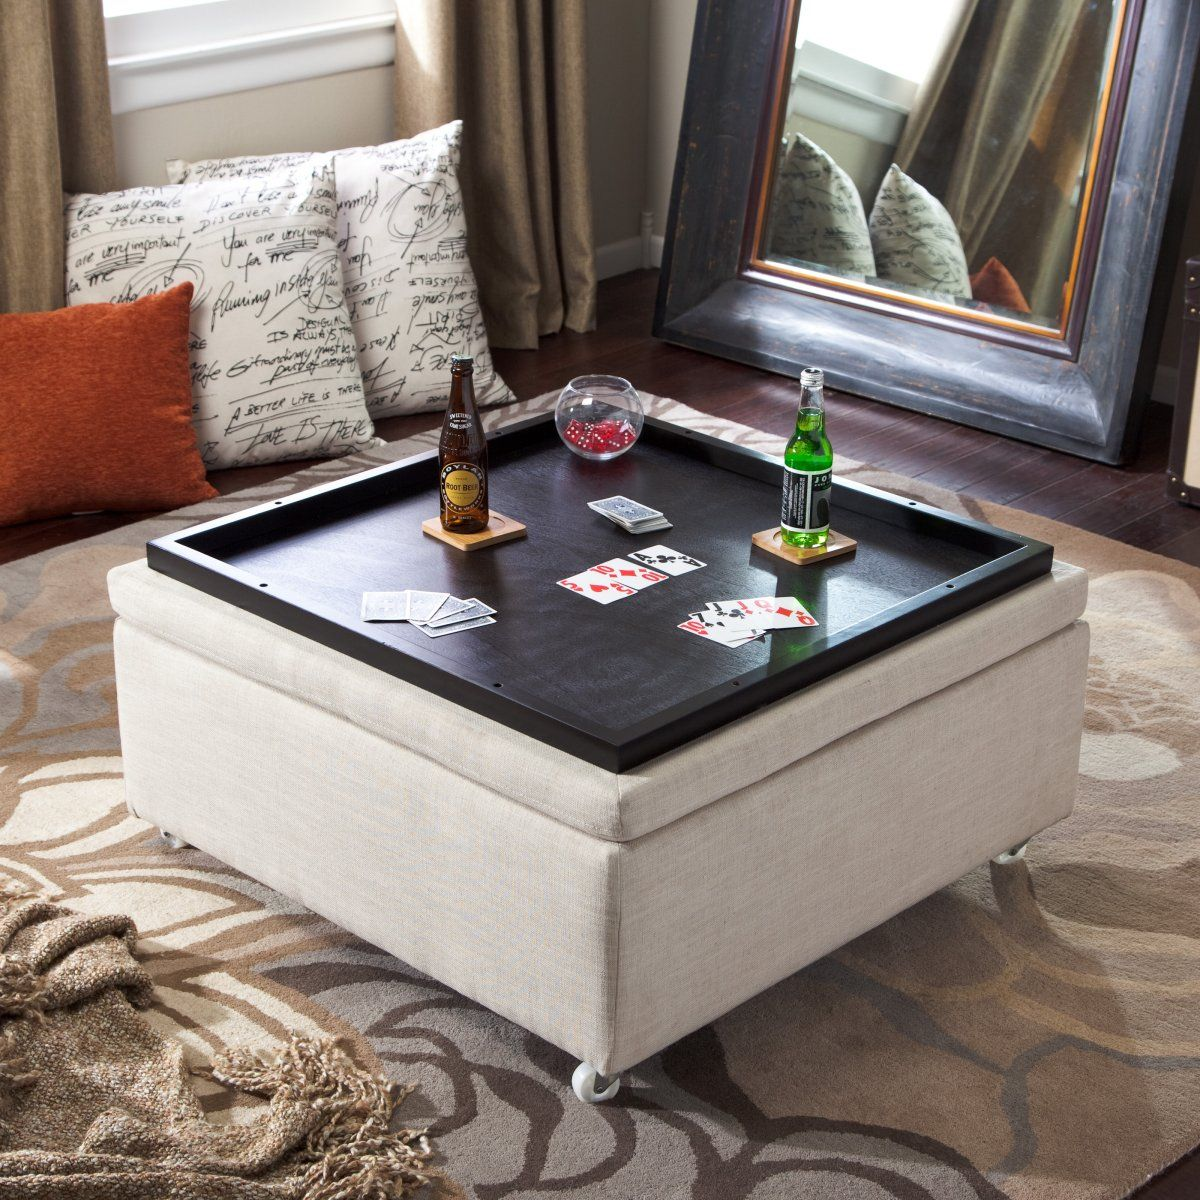 Charmant Corbett Linen Coffee Table Storage Ottoman   Storage Ottomans At  Hayneedle.com